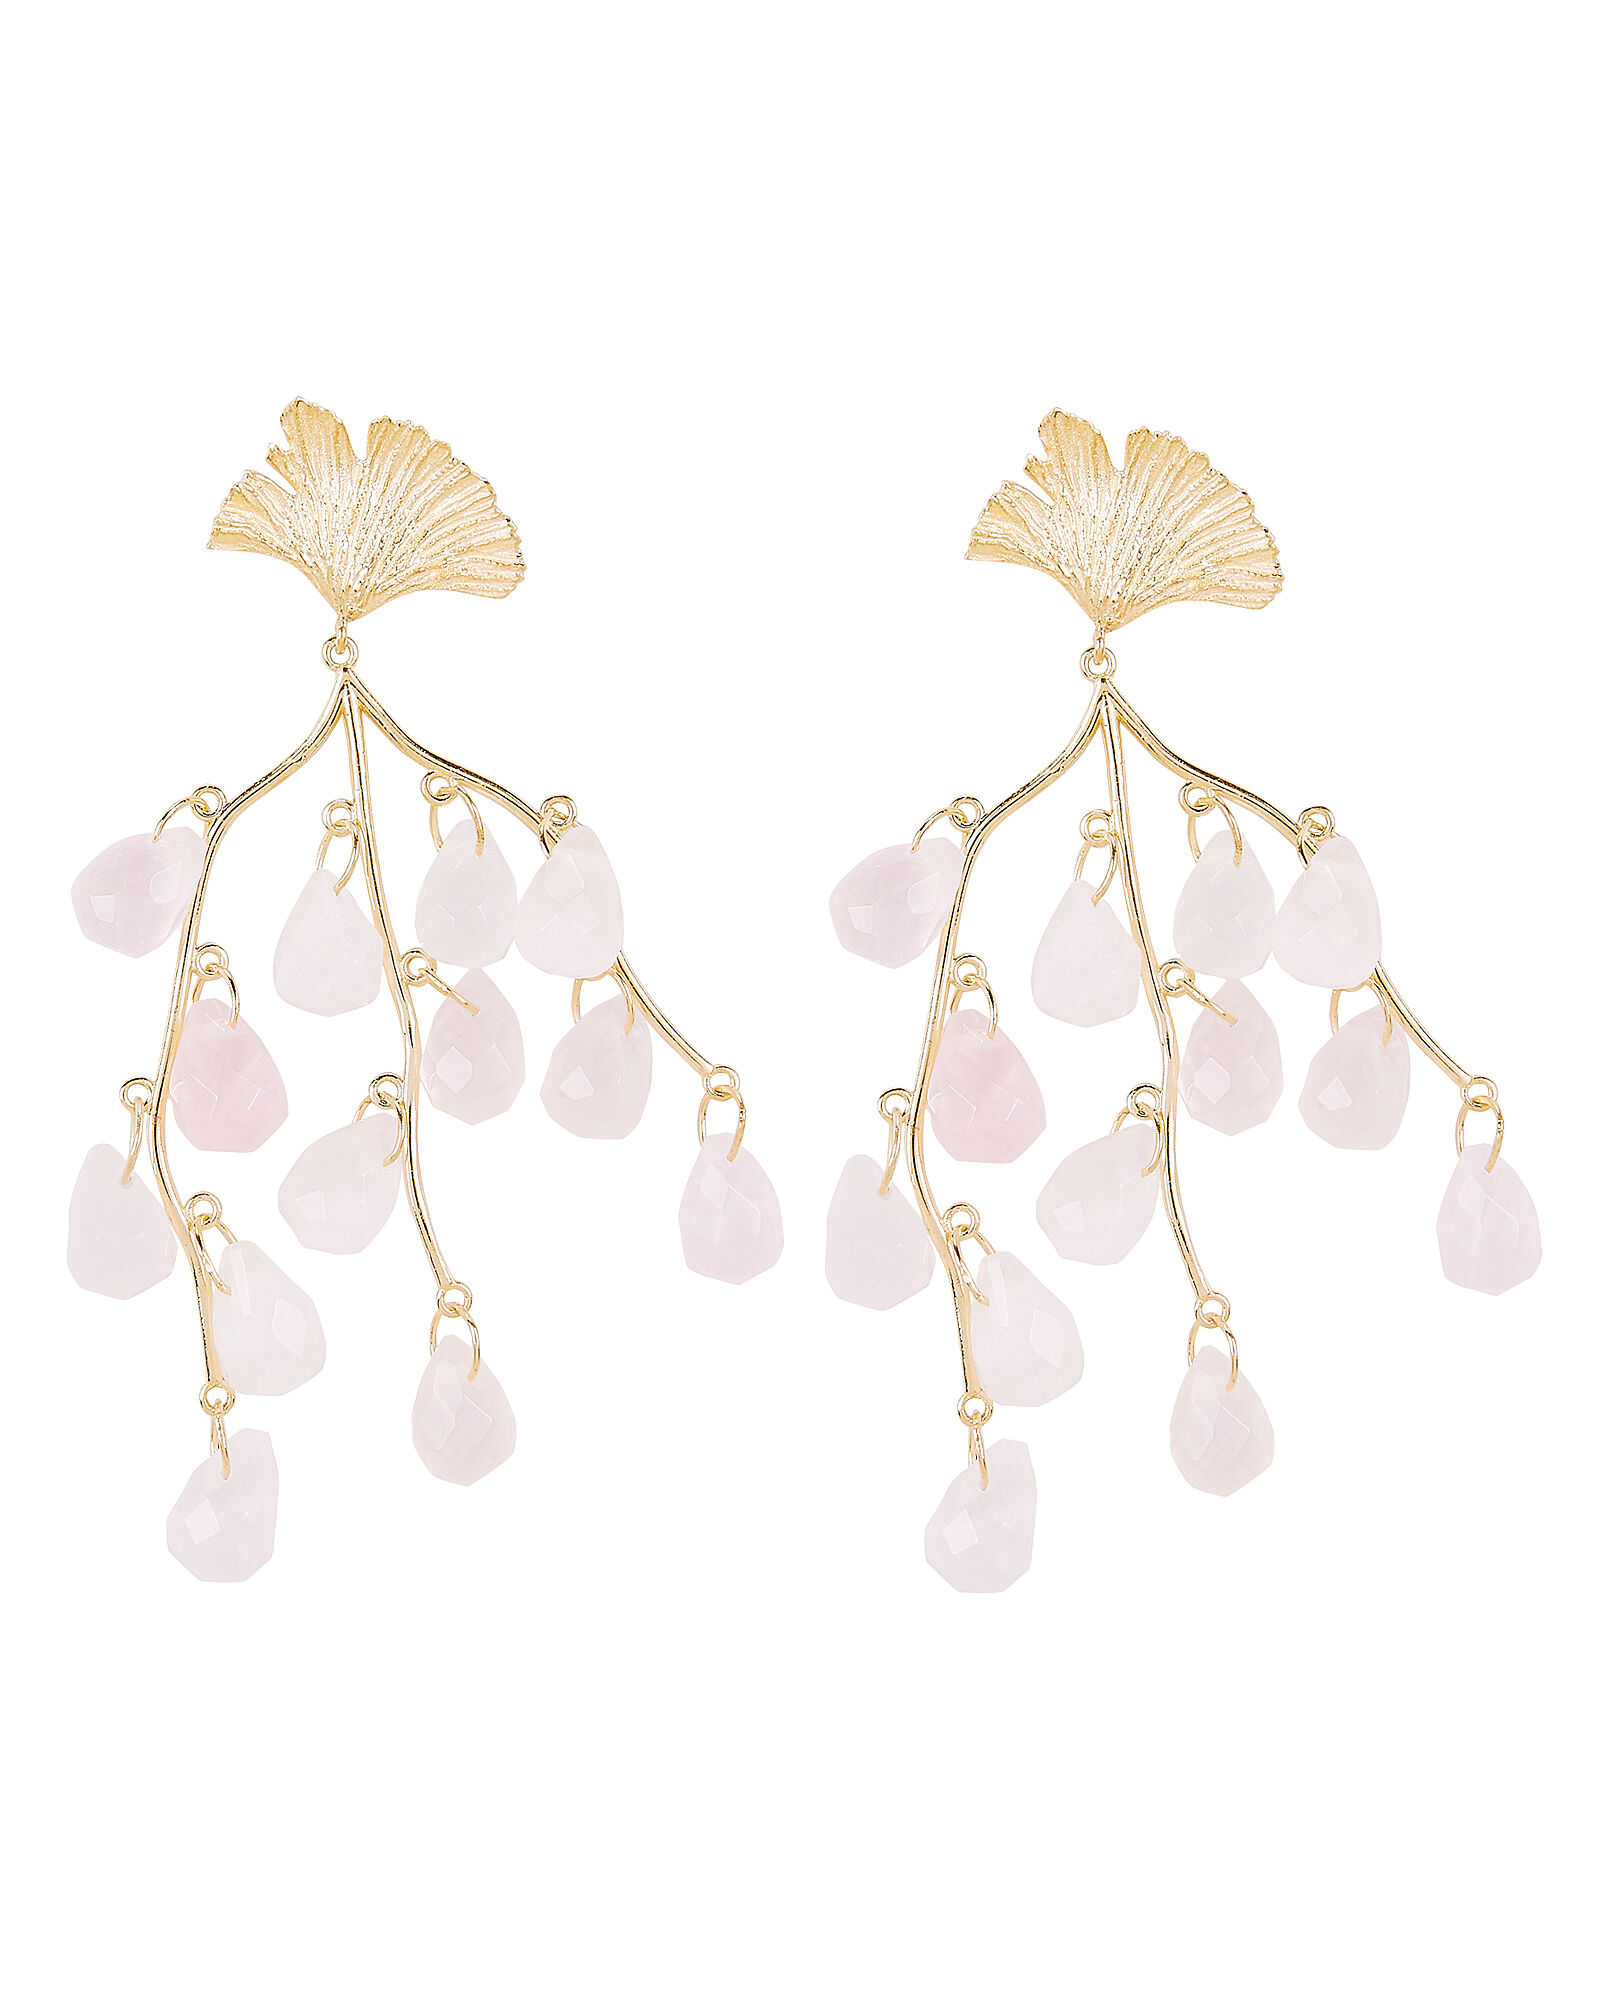 Caress of the Roses Earrings, PINK, hi-res